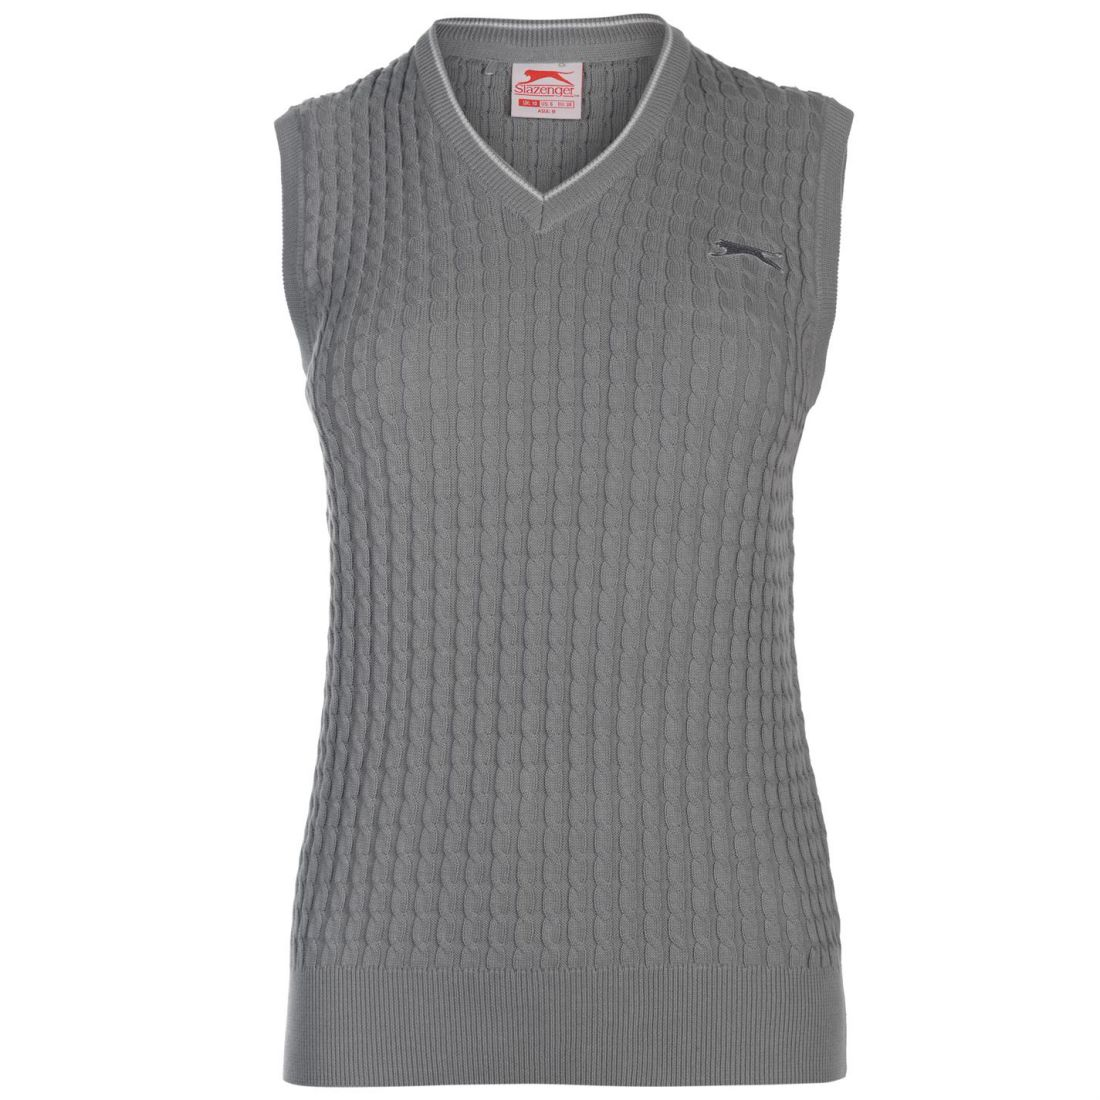 e630583d23 Slazenger Womens Cable Knit Vest Sweater Tank Top Jumper ...